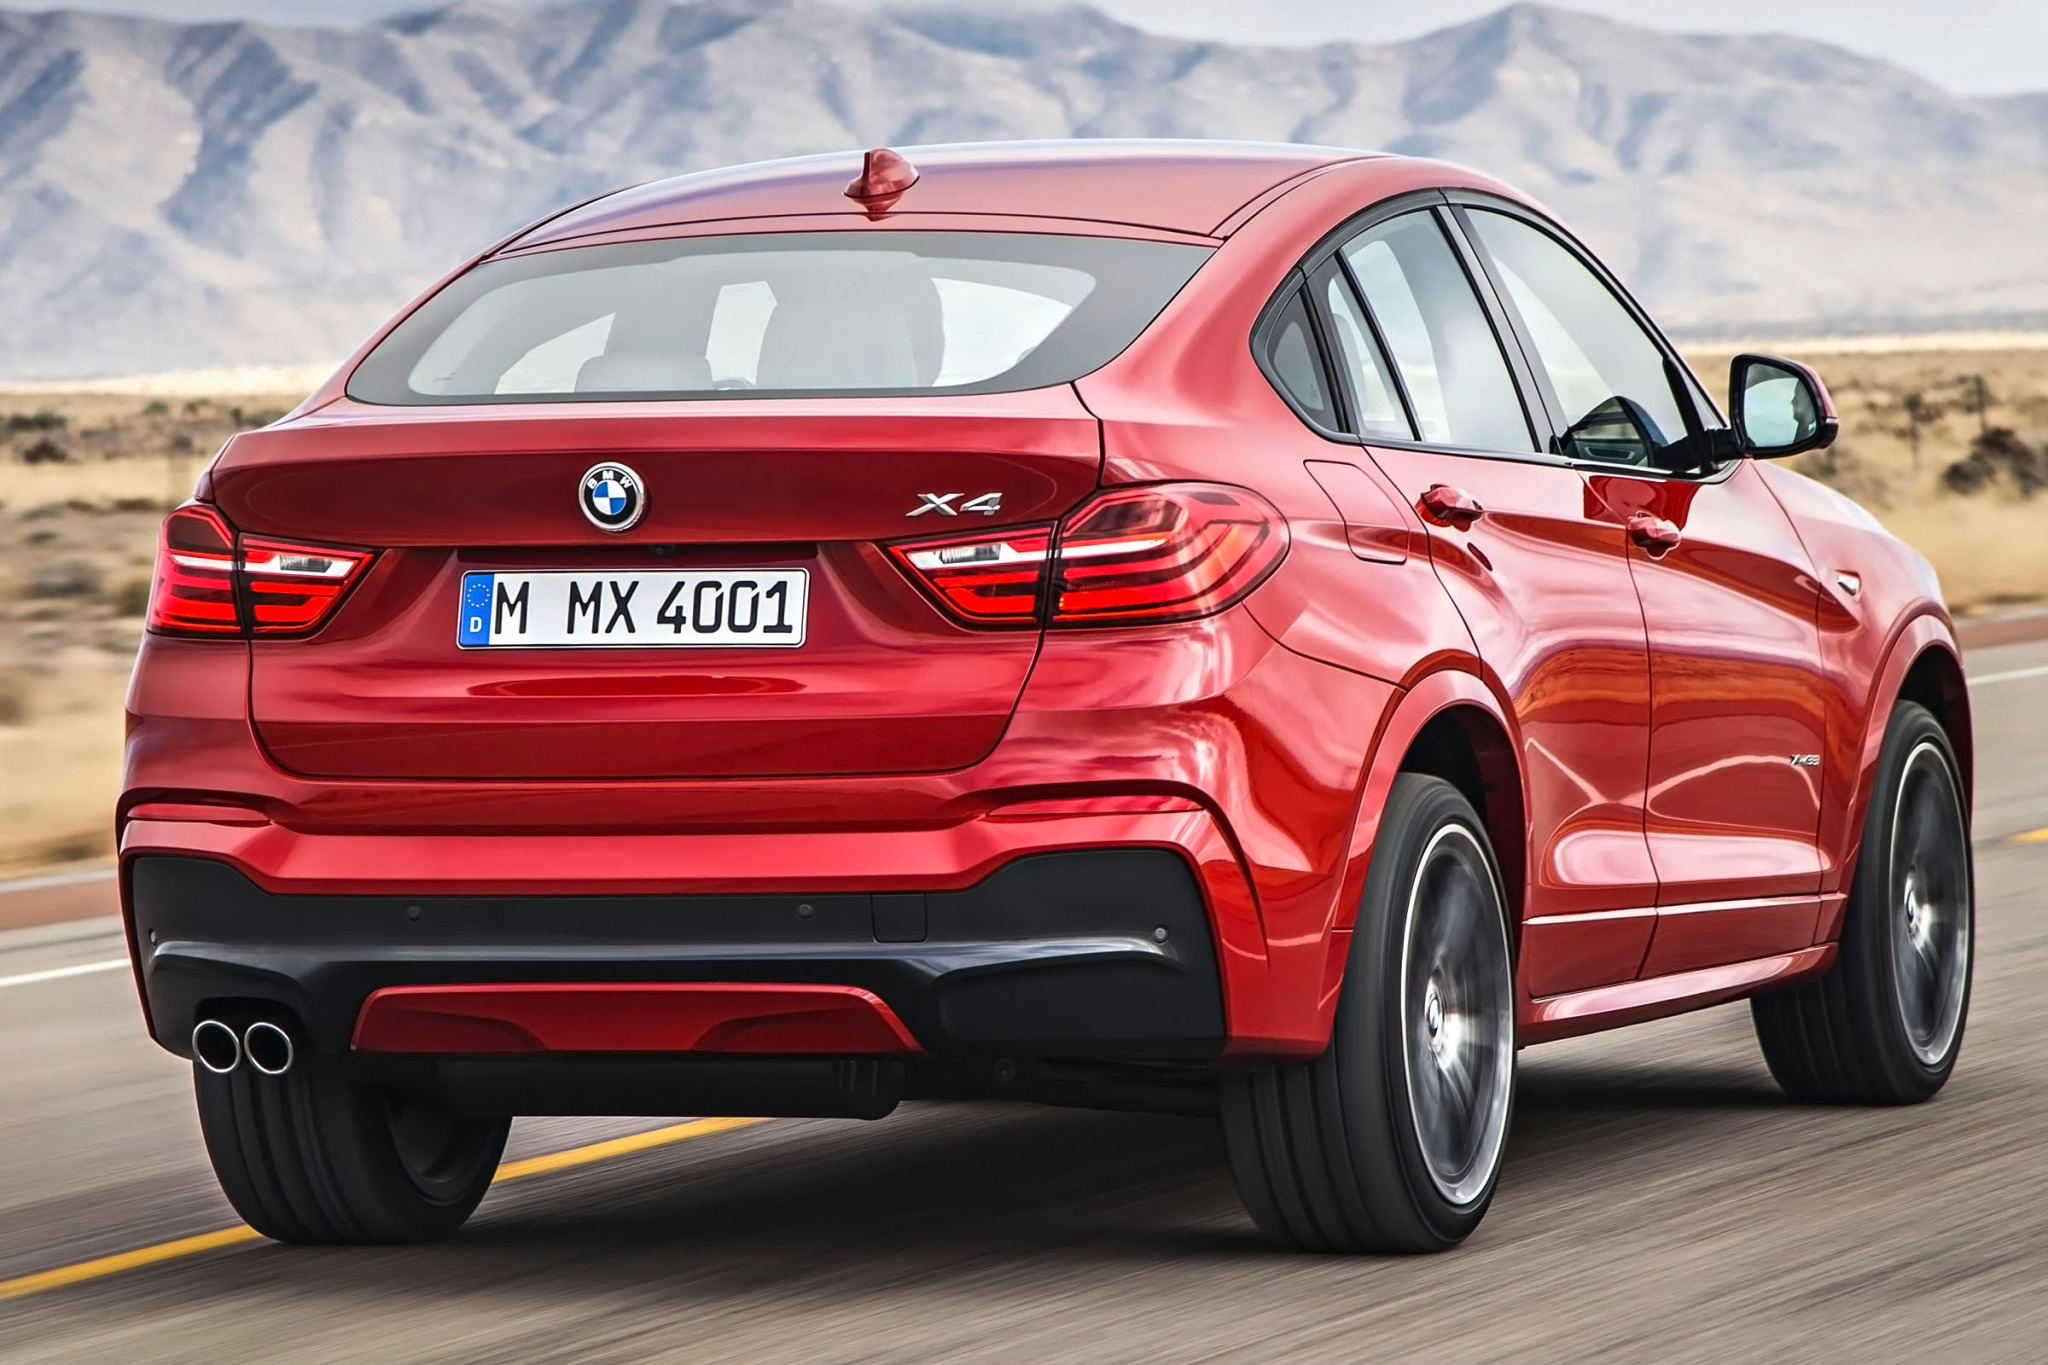 7 Seater Suv in India 2015 7 2015 Bmw x4 4dr Suv